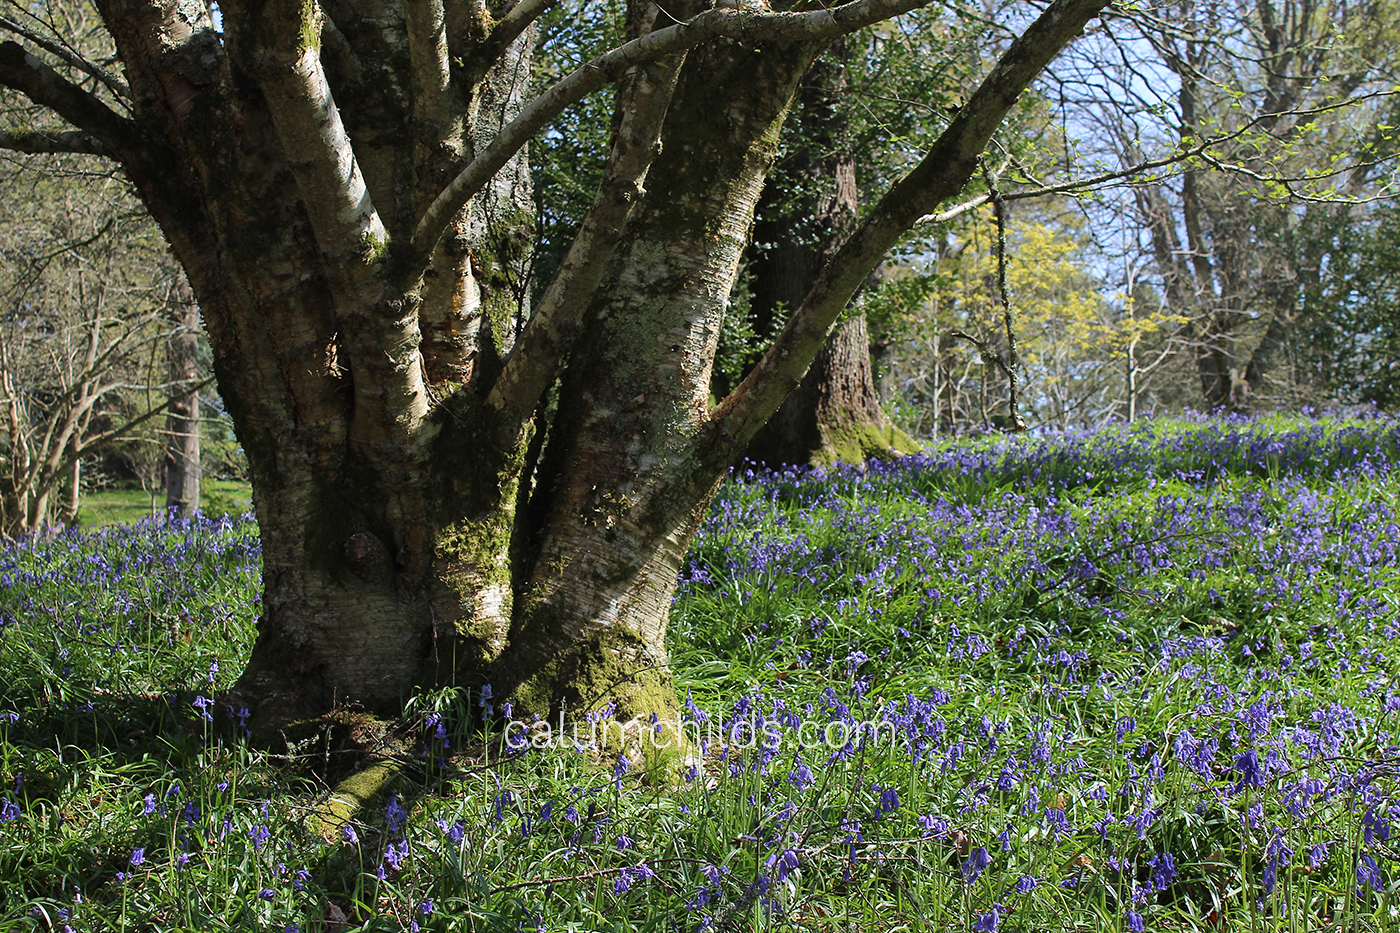 A thick tree is surrounded by a carpet of bluebells in a forest with a wide variety of trees.